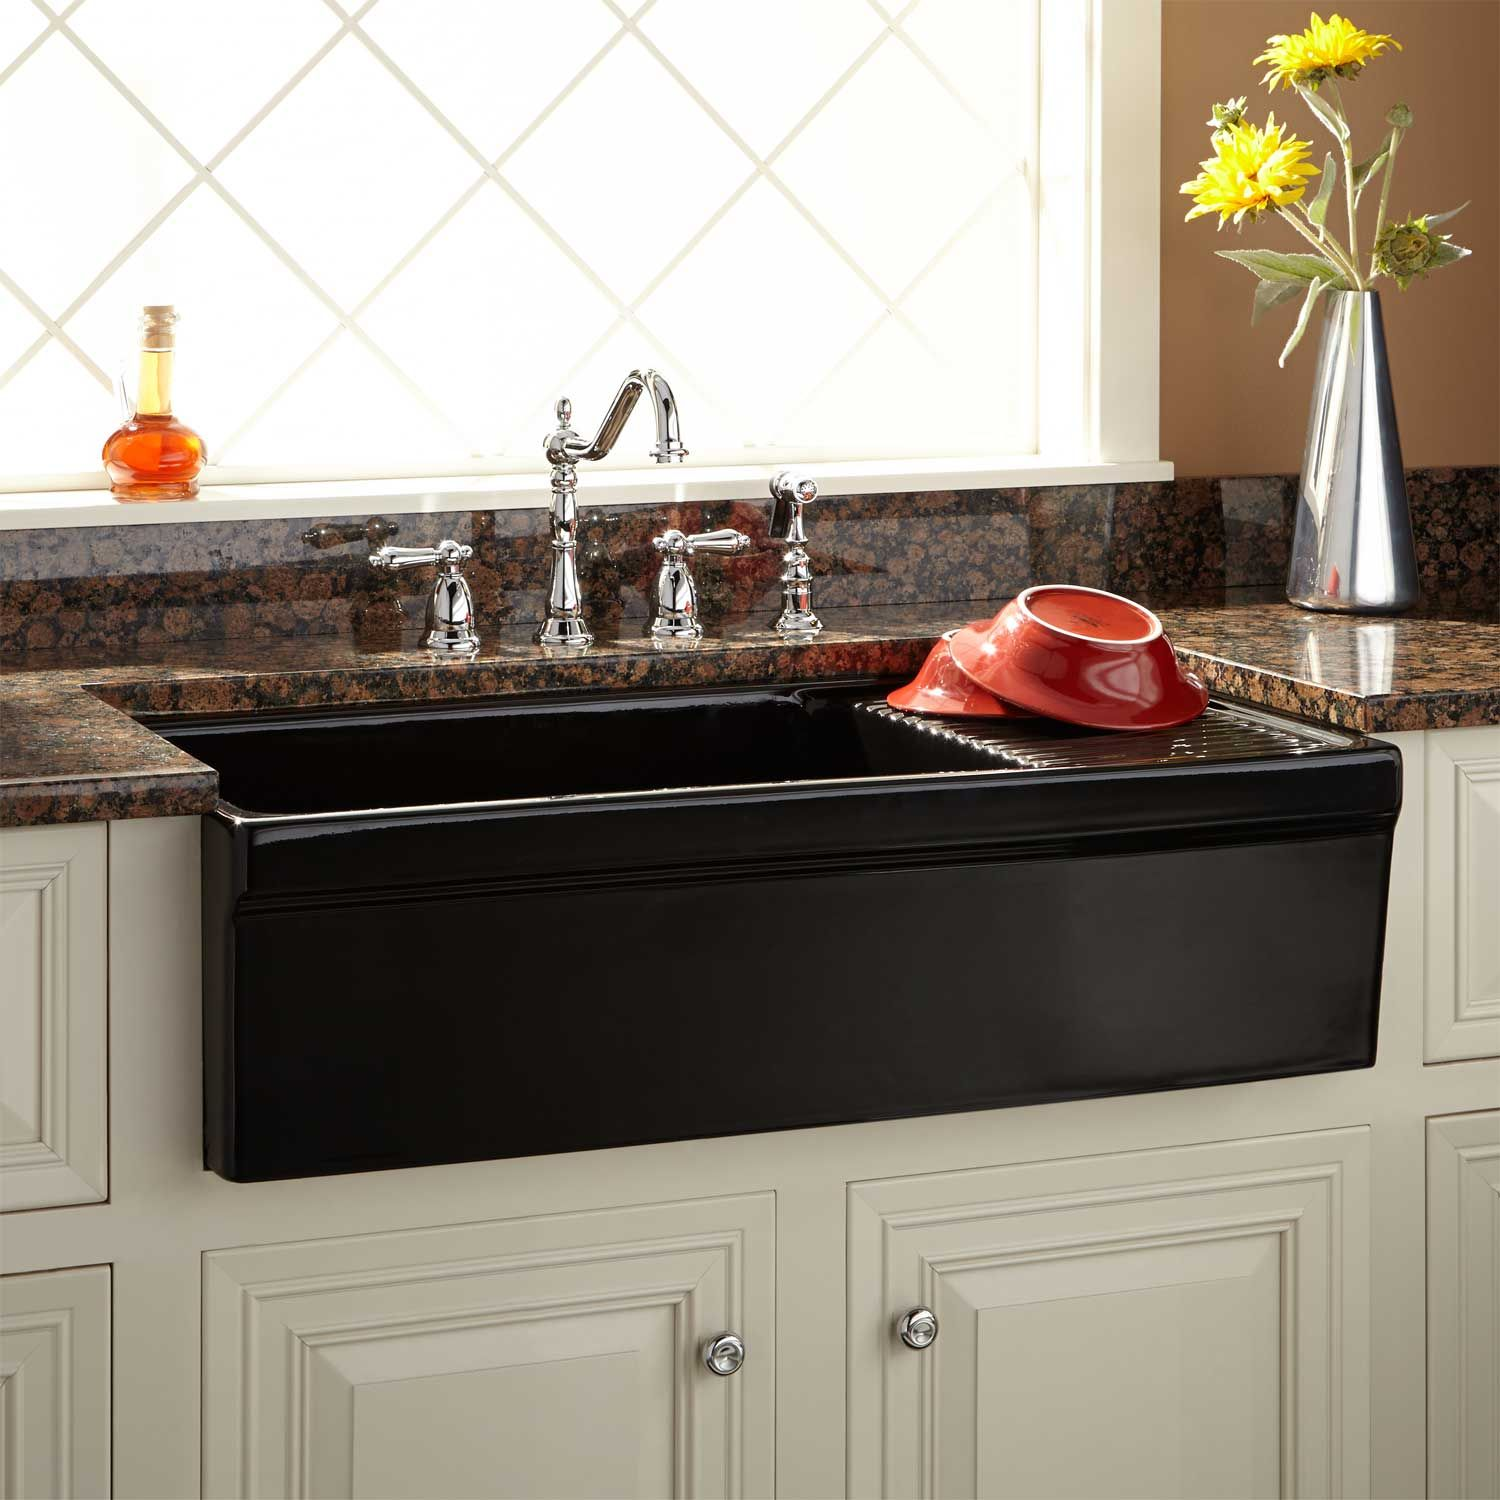 36 Aulani Italian Fireclay Farmhouse Sink with